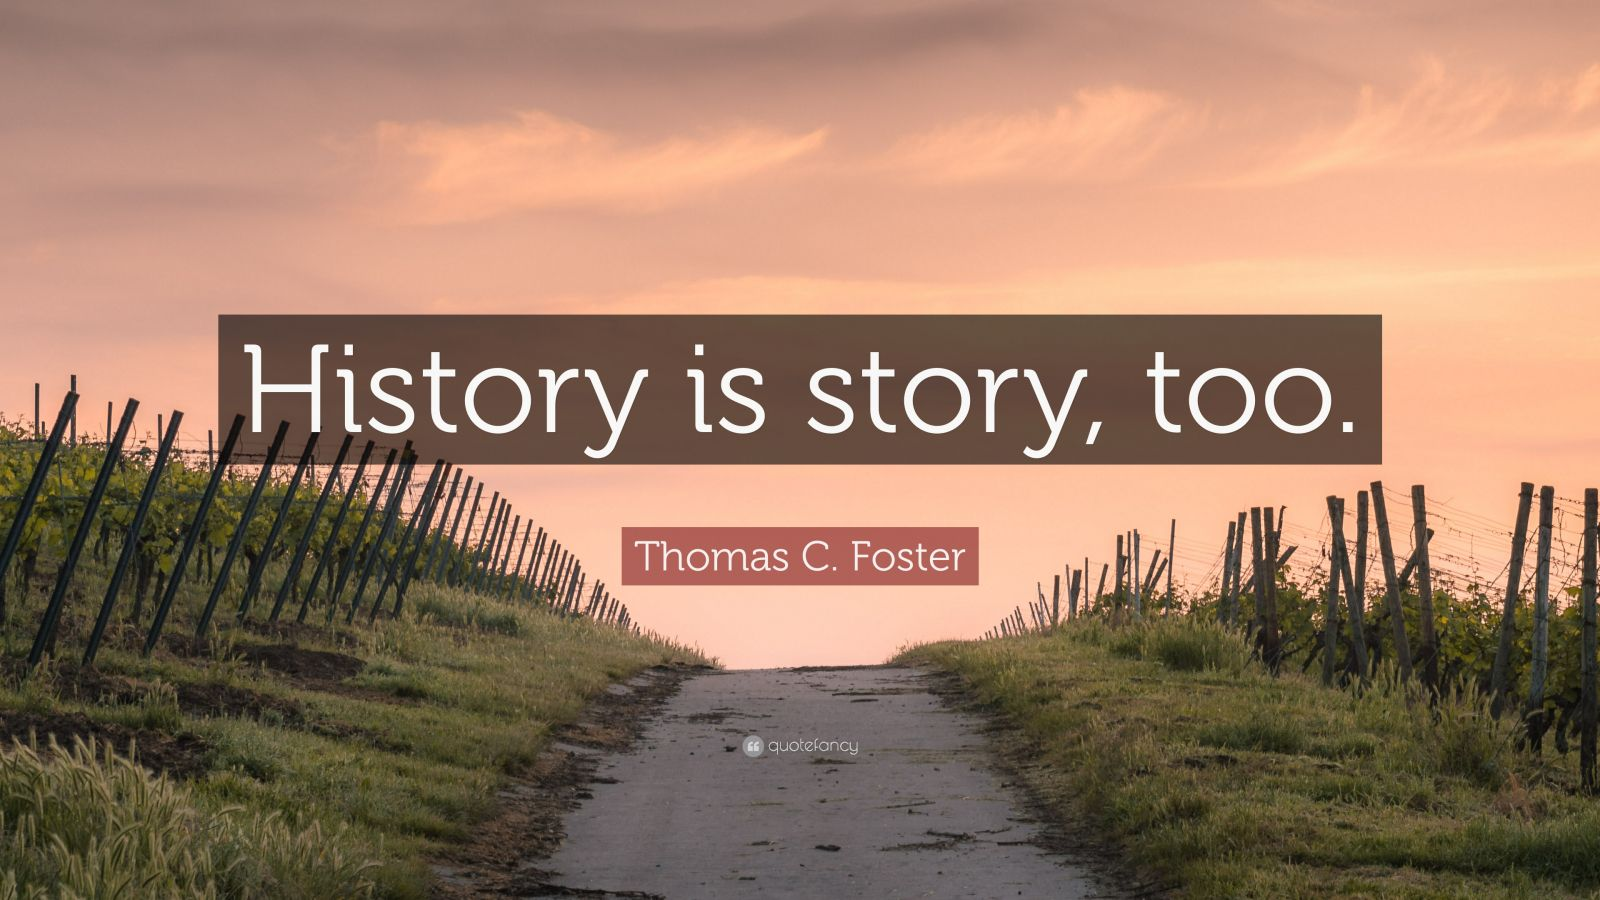 """Thomas C. Foster Quote: """"History is story, too."""" (2 ..."""